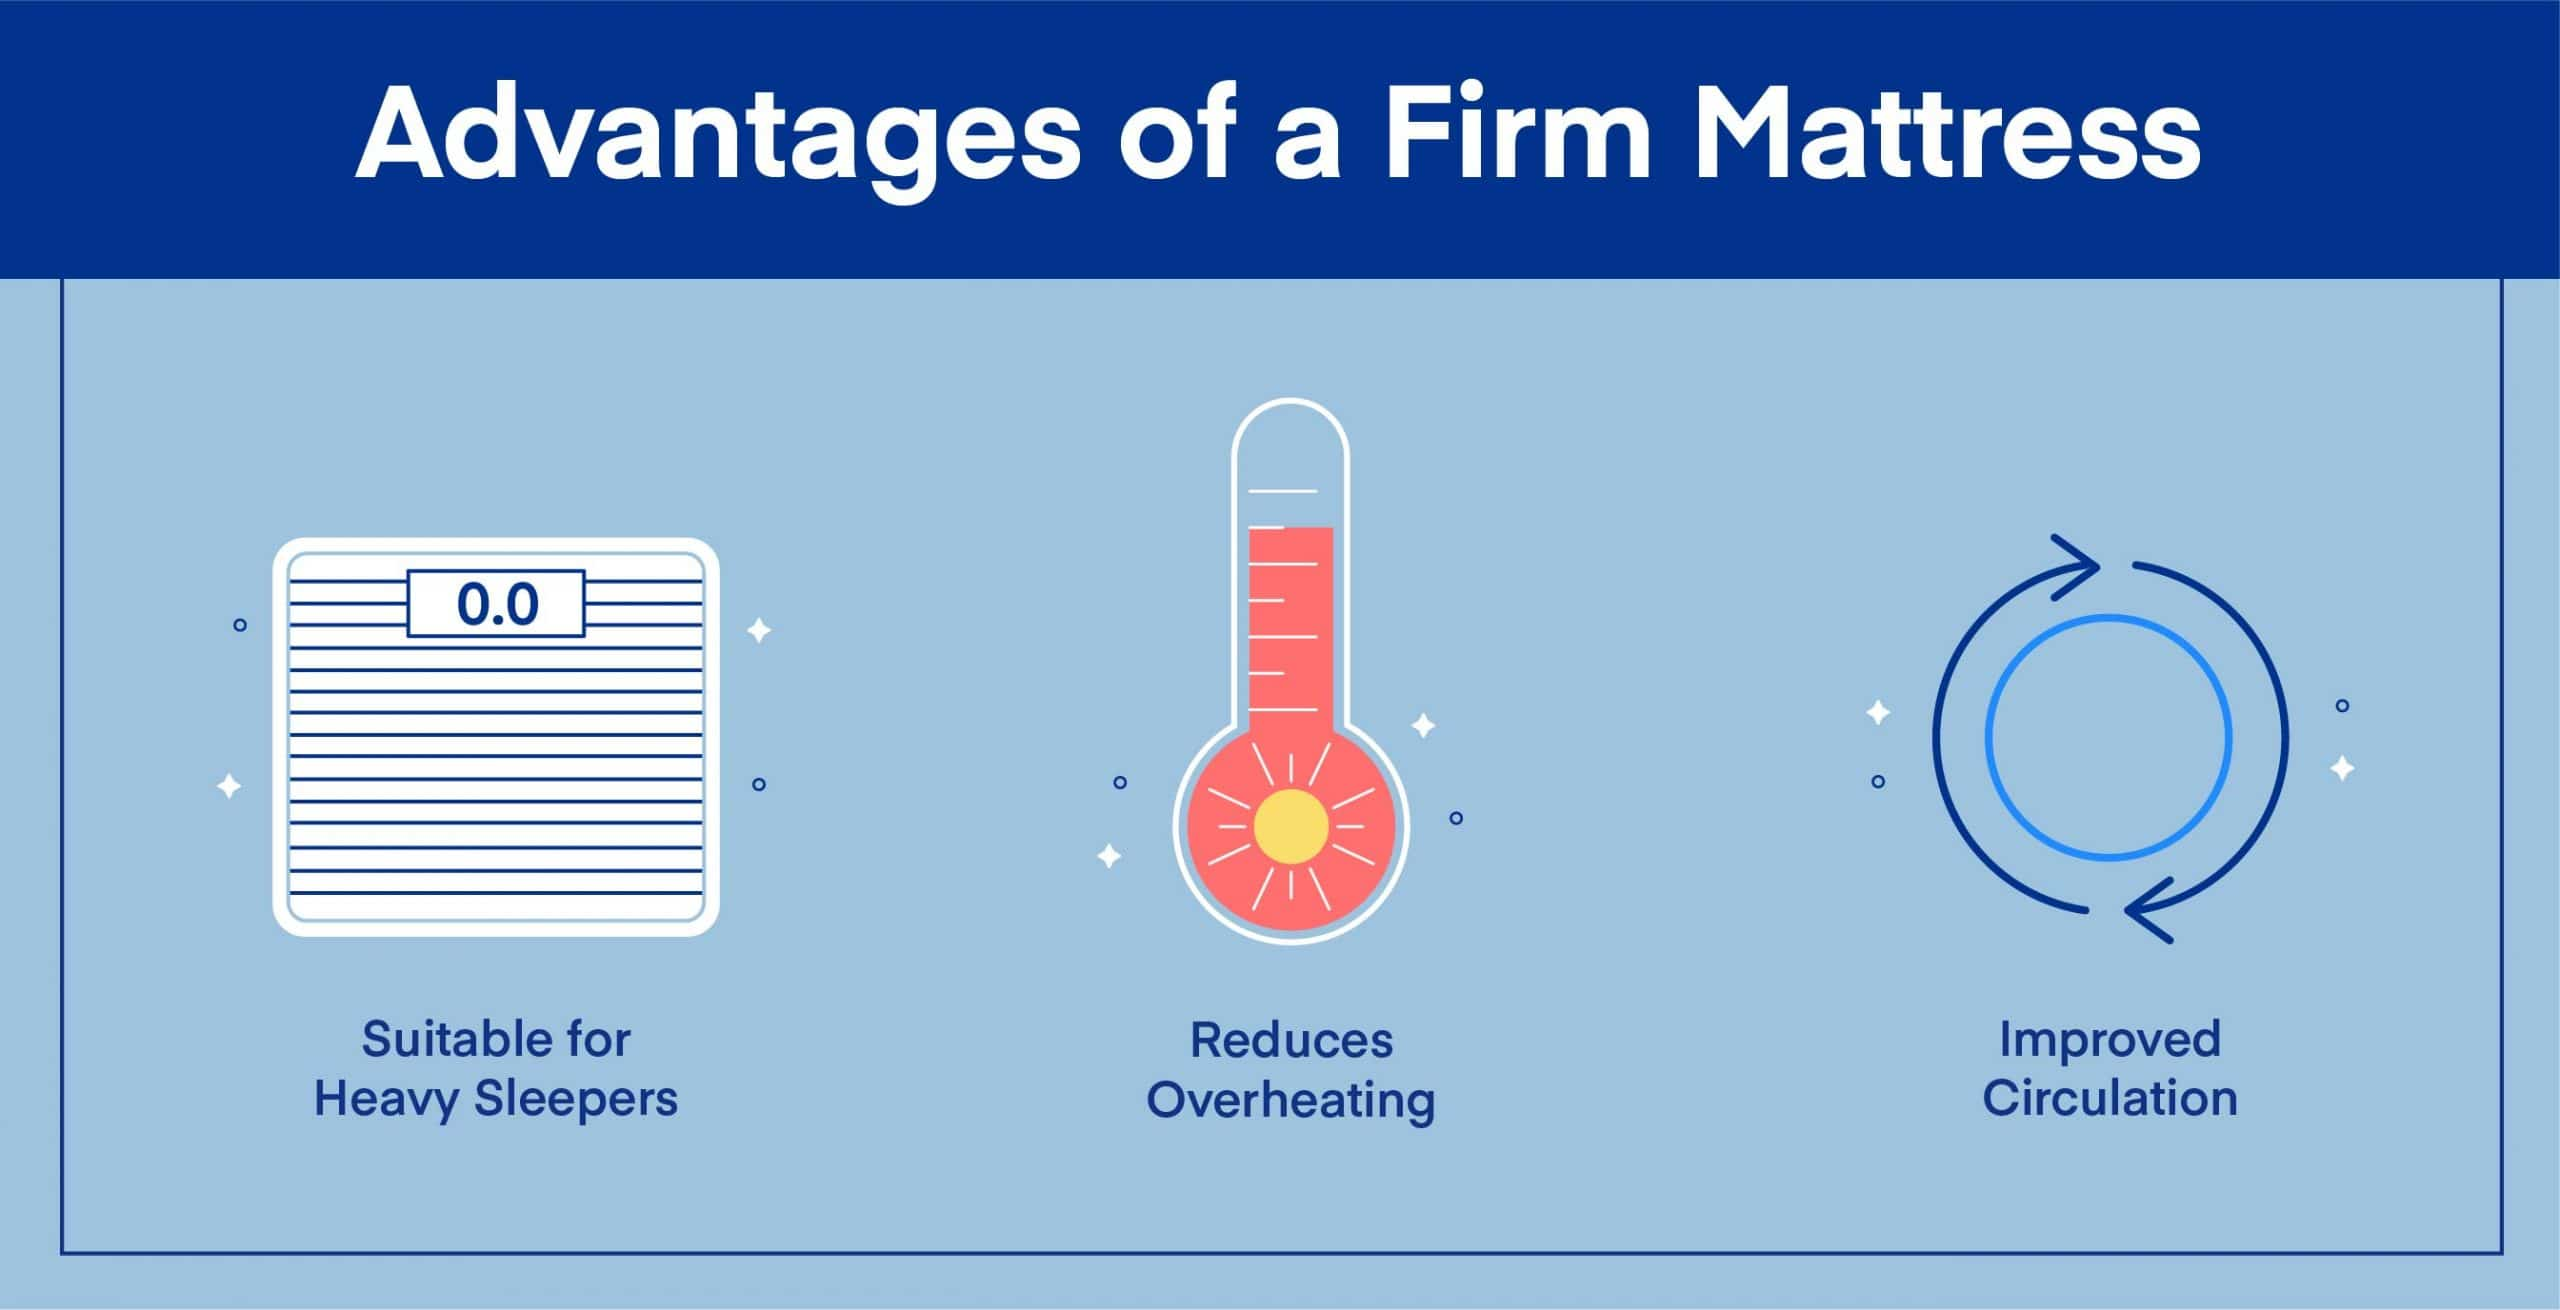 Benefits of Firm Mattresses